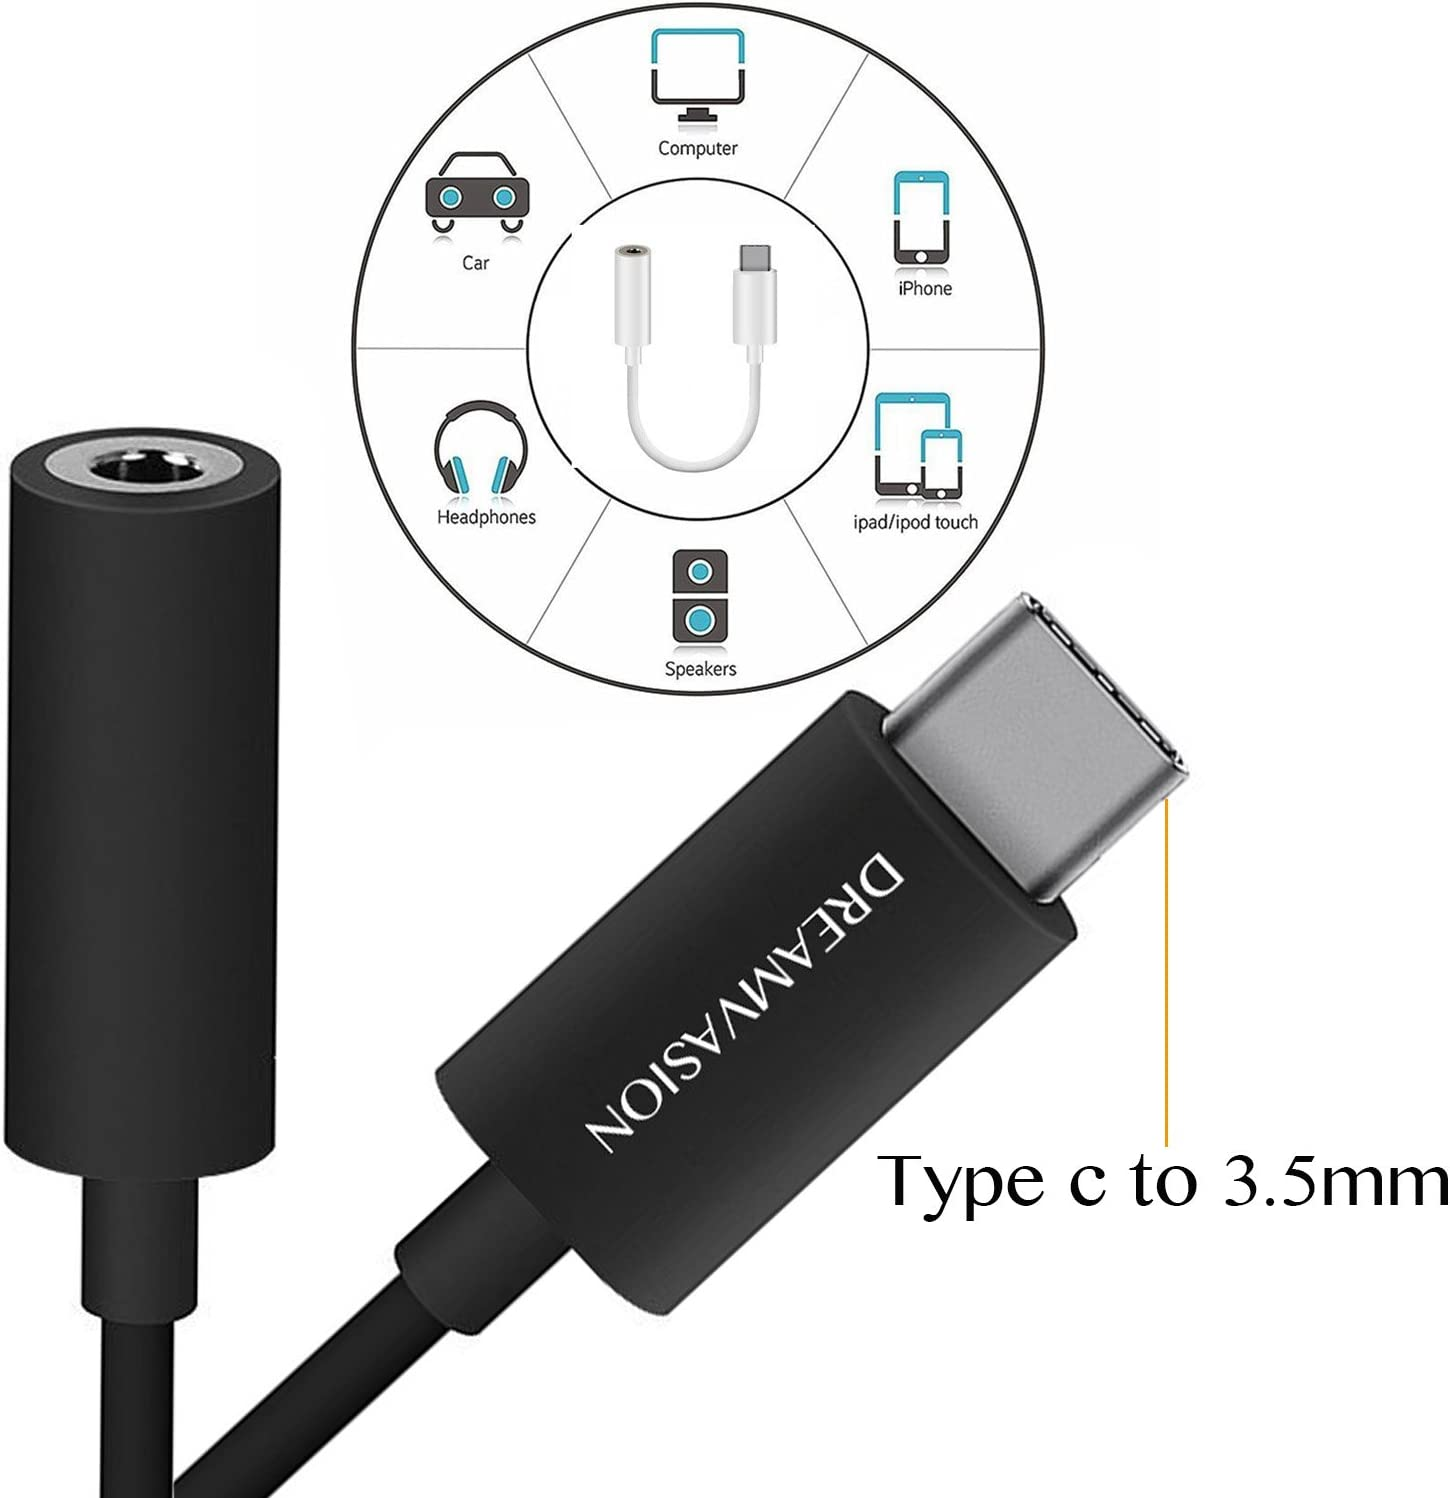 Moto Z Type C to 3.5mm Headphone Audio Jack Adapter Letv Le Pro 3 Samsung Galaxy S8 and More Dreamcasion USB C 3.1 Male to 3.5mm Female Extension Aux Cable Connector for Motorola Moto Z 2 Pack